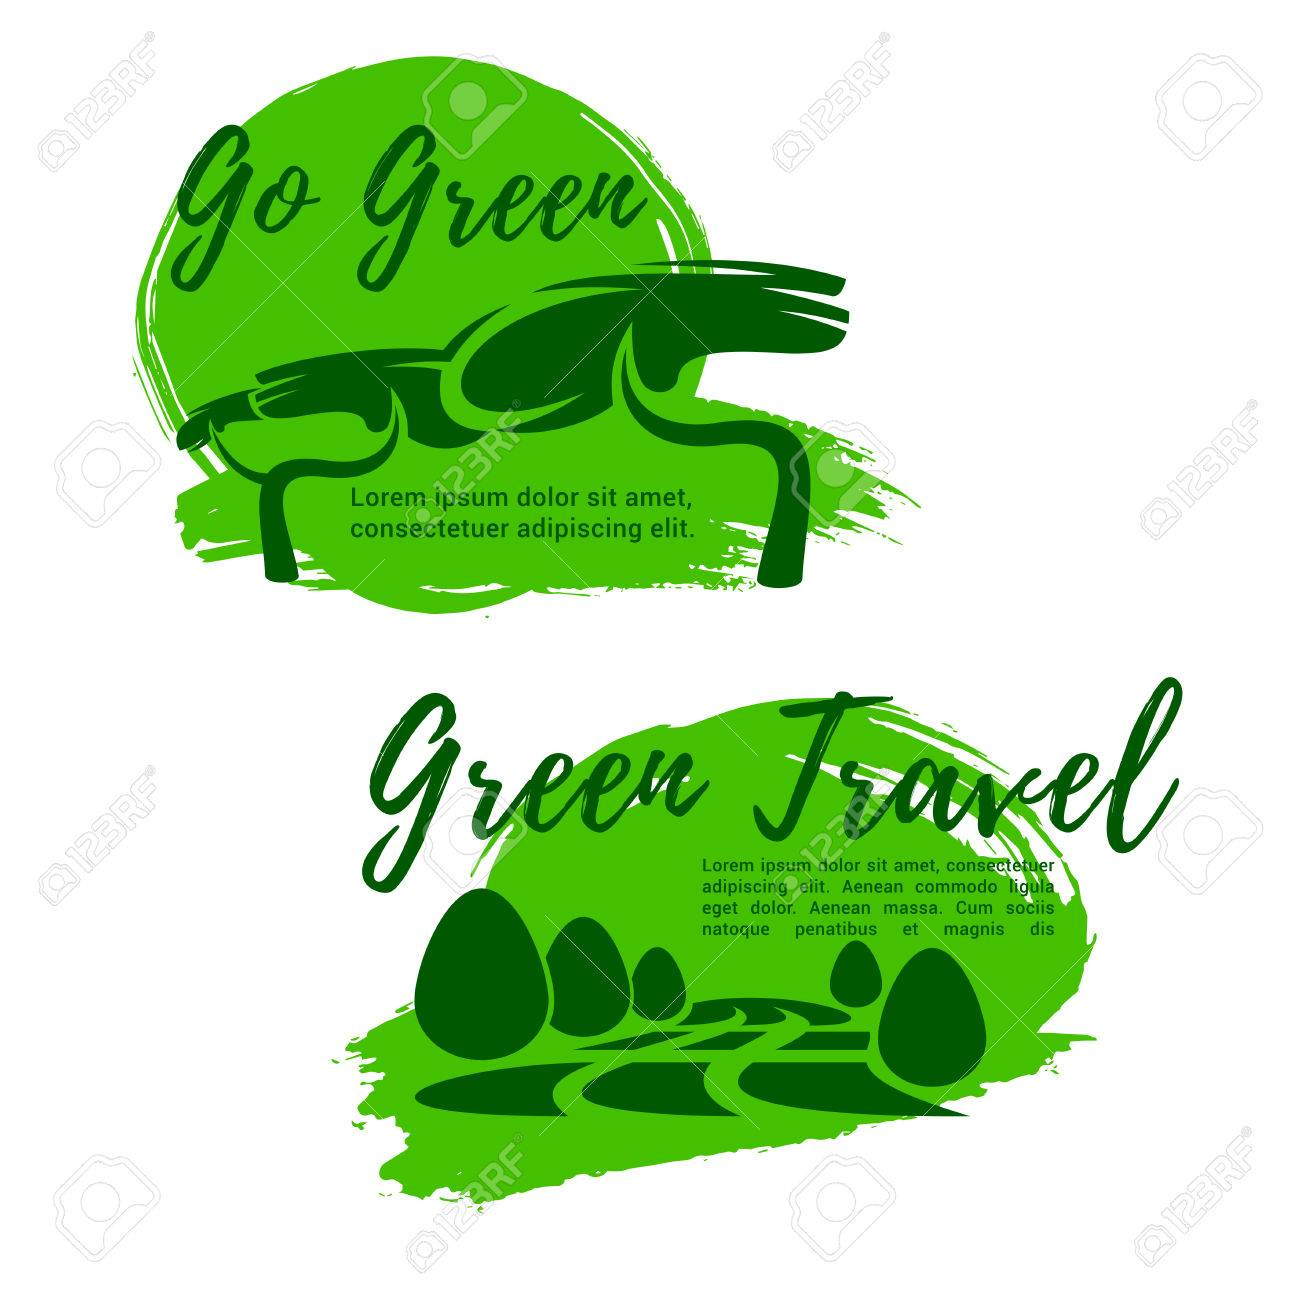 Ecotourism And Go Green Symbol For Travel Design Royalty Free